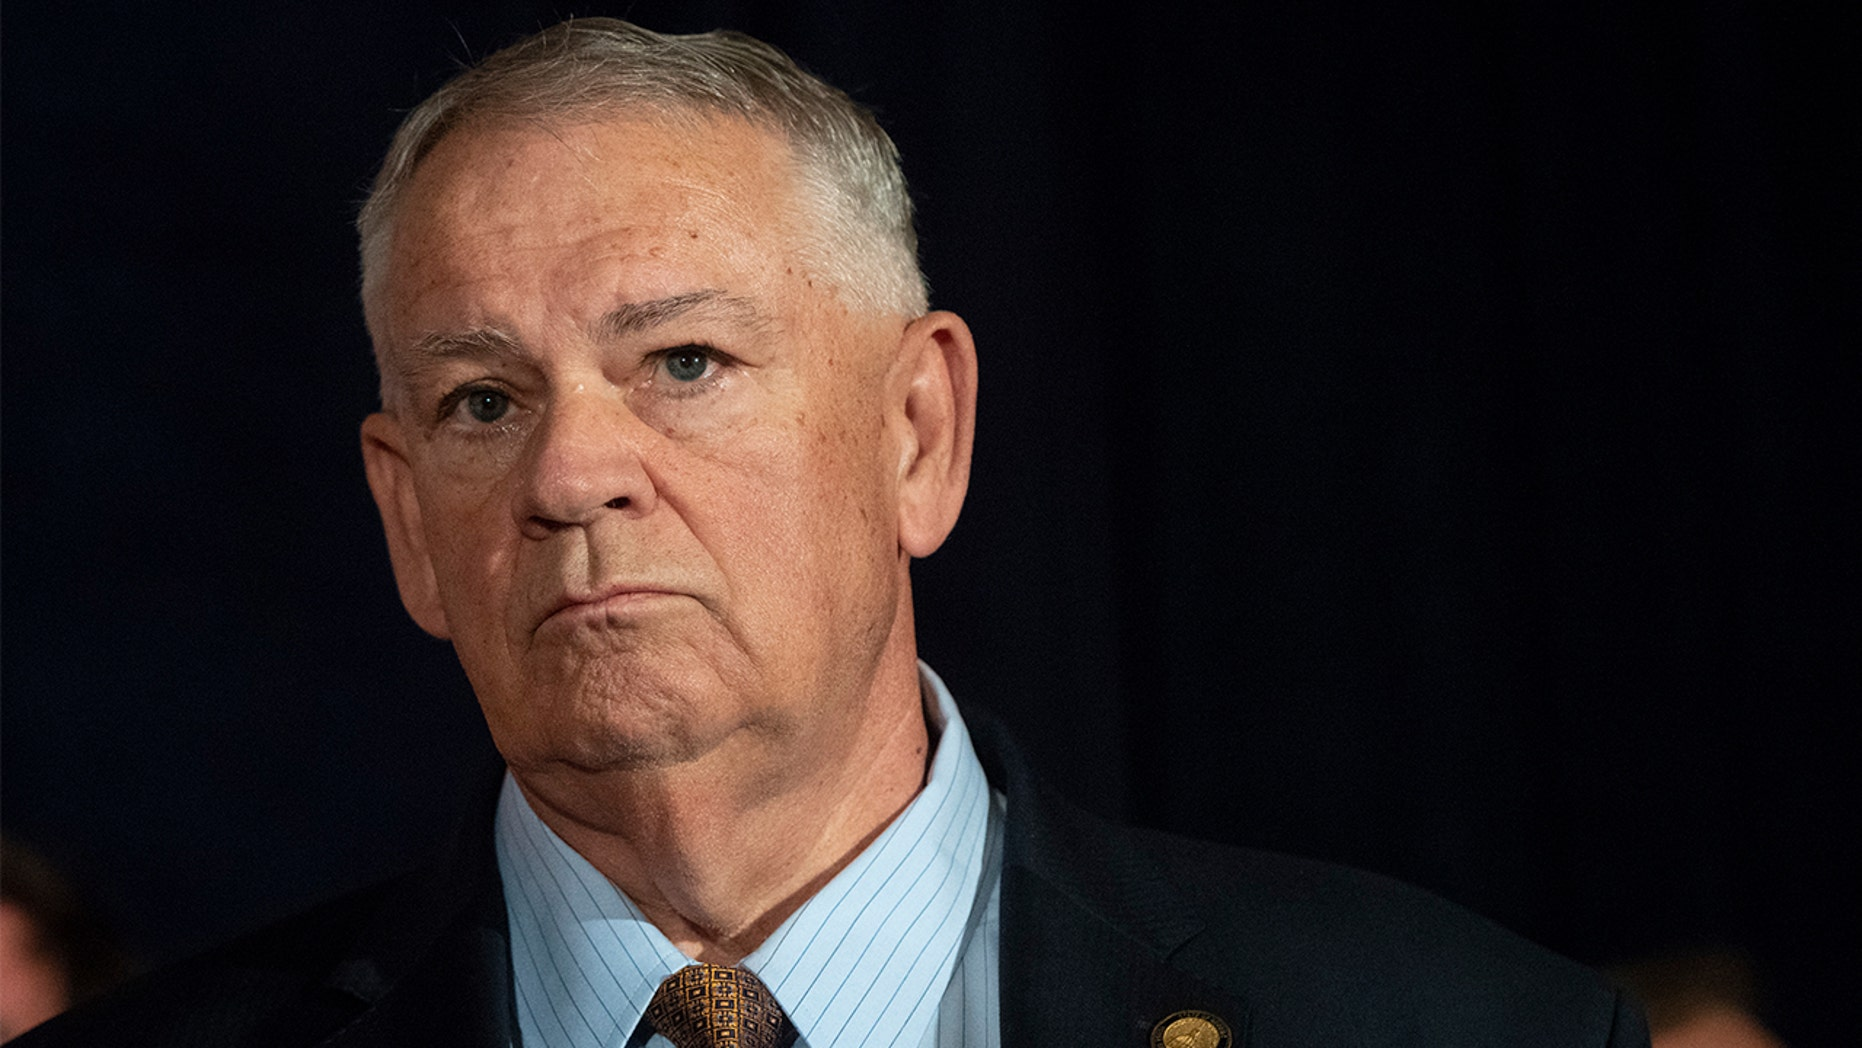 Georgia Speaker of the House David Ralston repeatedly used his office to delay court proceedings -- some of them for years -- for criminal defendants he represents as an attorney, according to an investigation by two Atlanta news organizations.